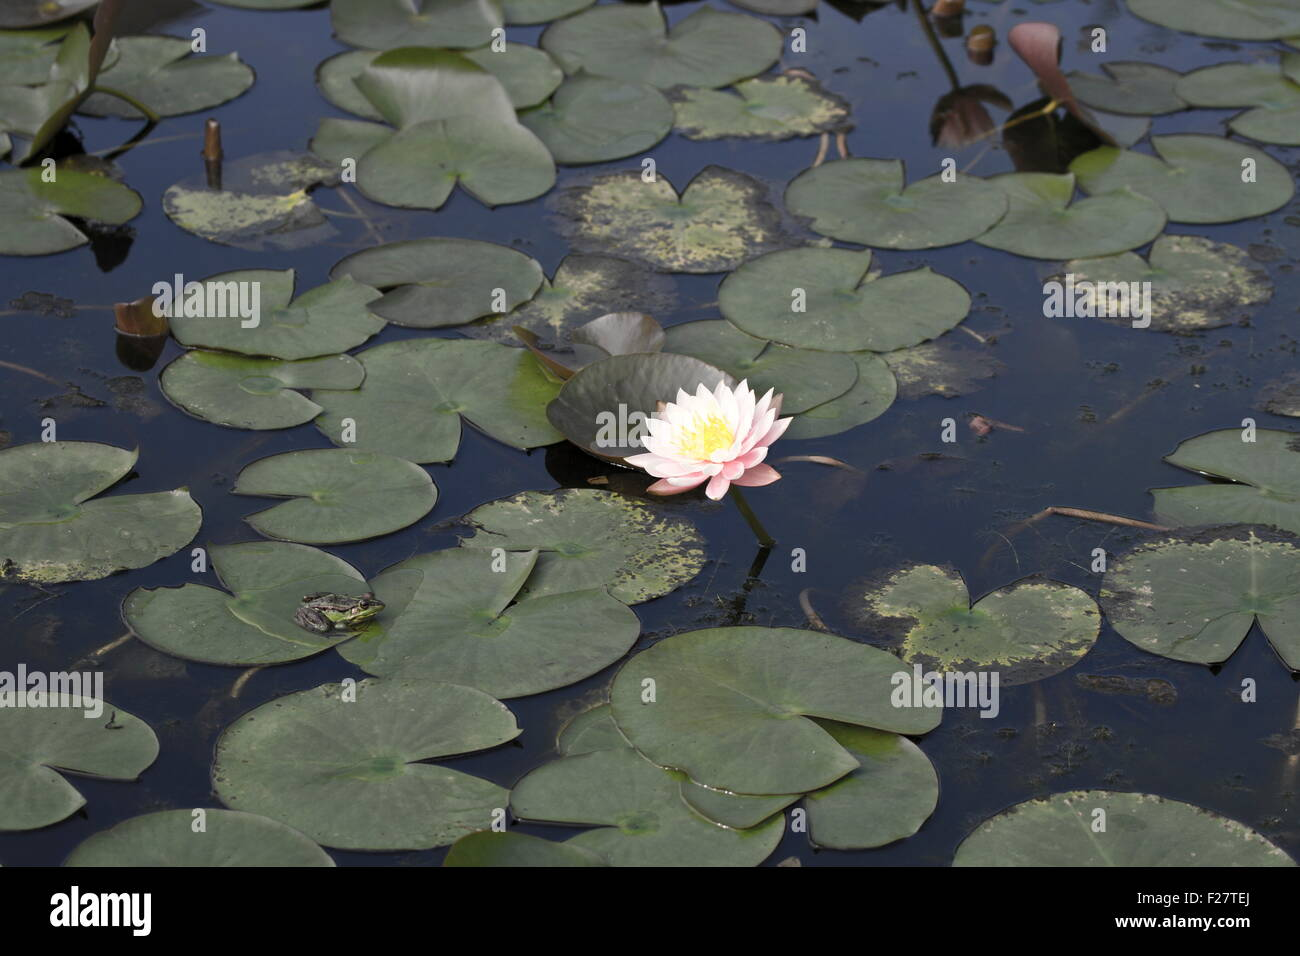 Bloom white lotus with a frog in natural habitat stock photo bloom white lotus with a frog in natural habitat mightylinksfo Image collections